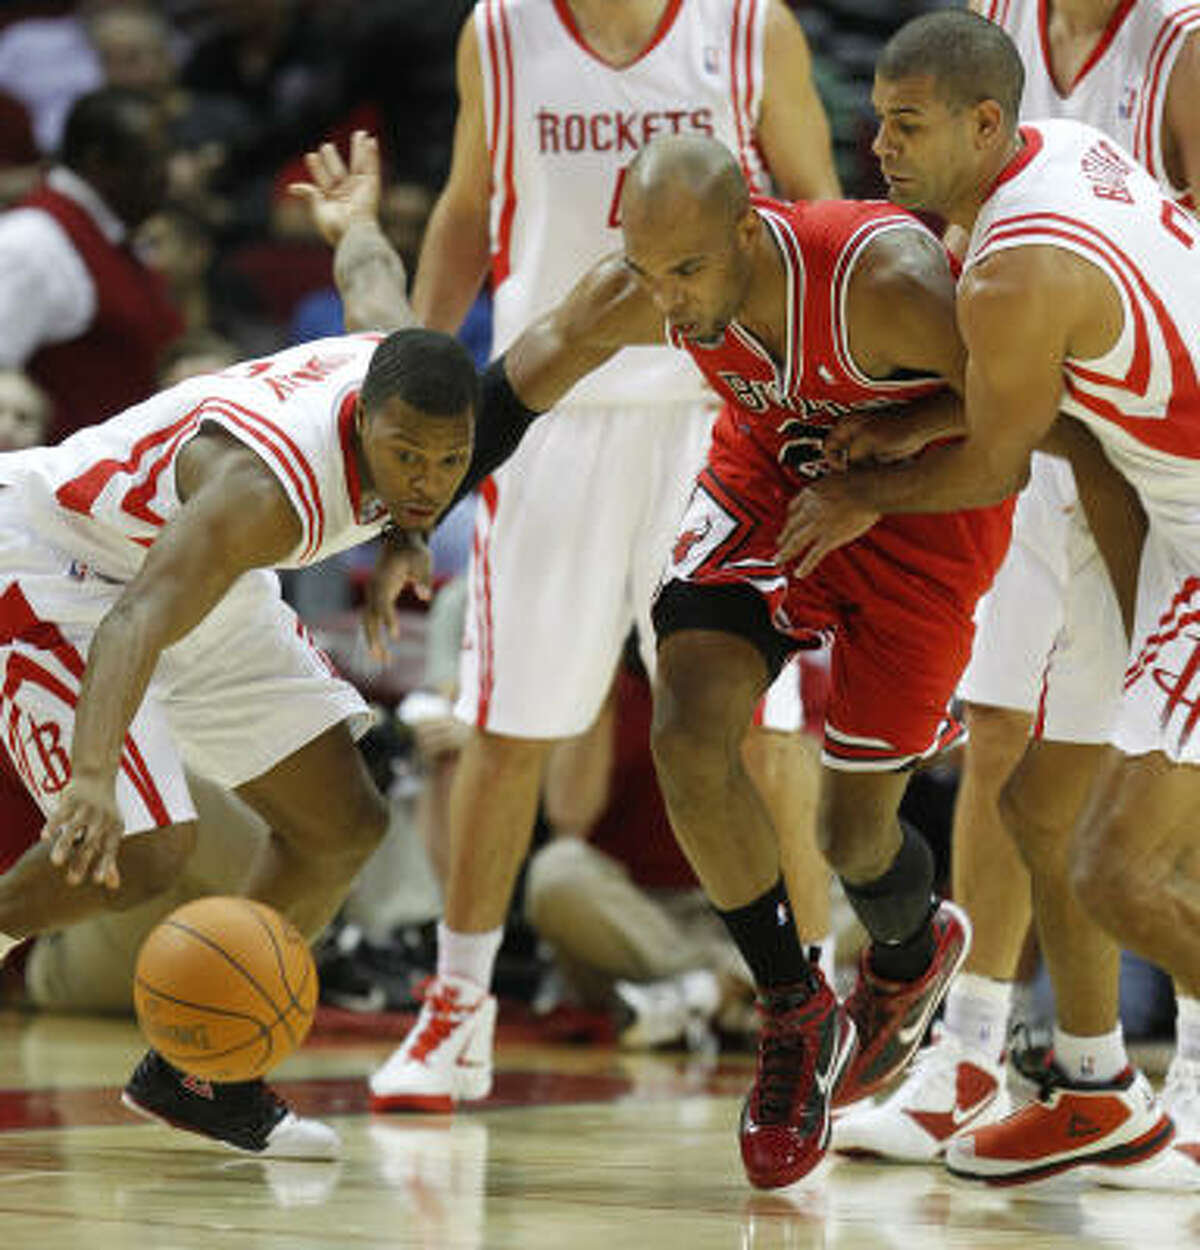 Rockets guard Kyle Lowry, left, and forward Shane Battier, right, battle Bulls forward Taj Gibson, center, for a loose ball during the first quarter.